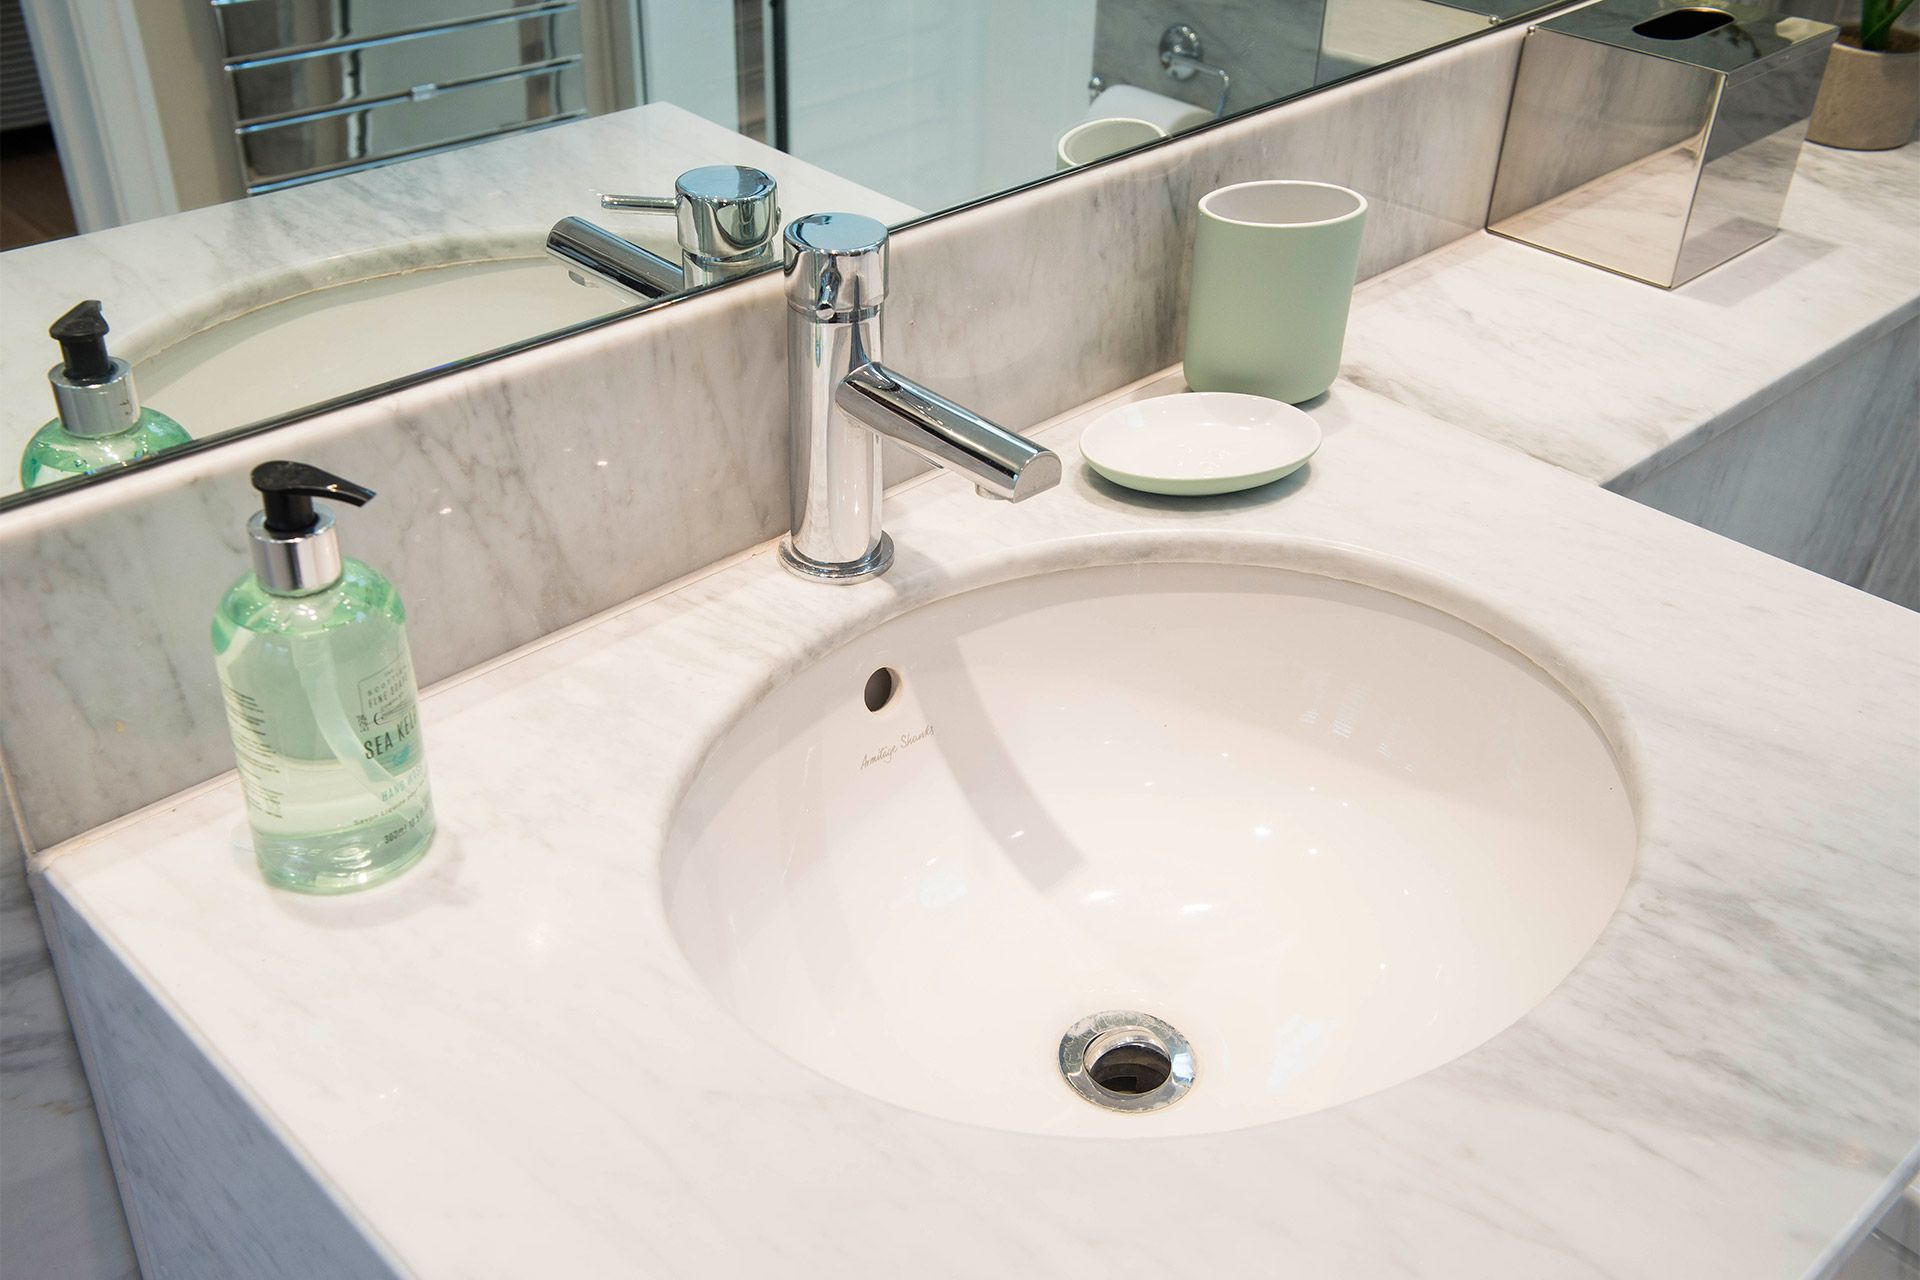 Stylish sink in the bathroom of the Eldon vacation rental offered by London Perfect